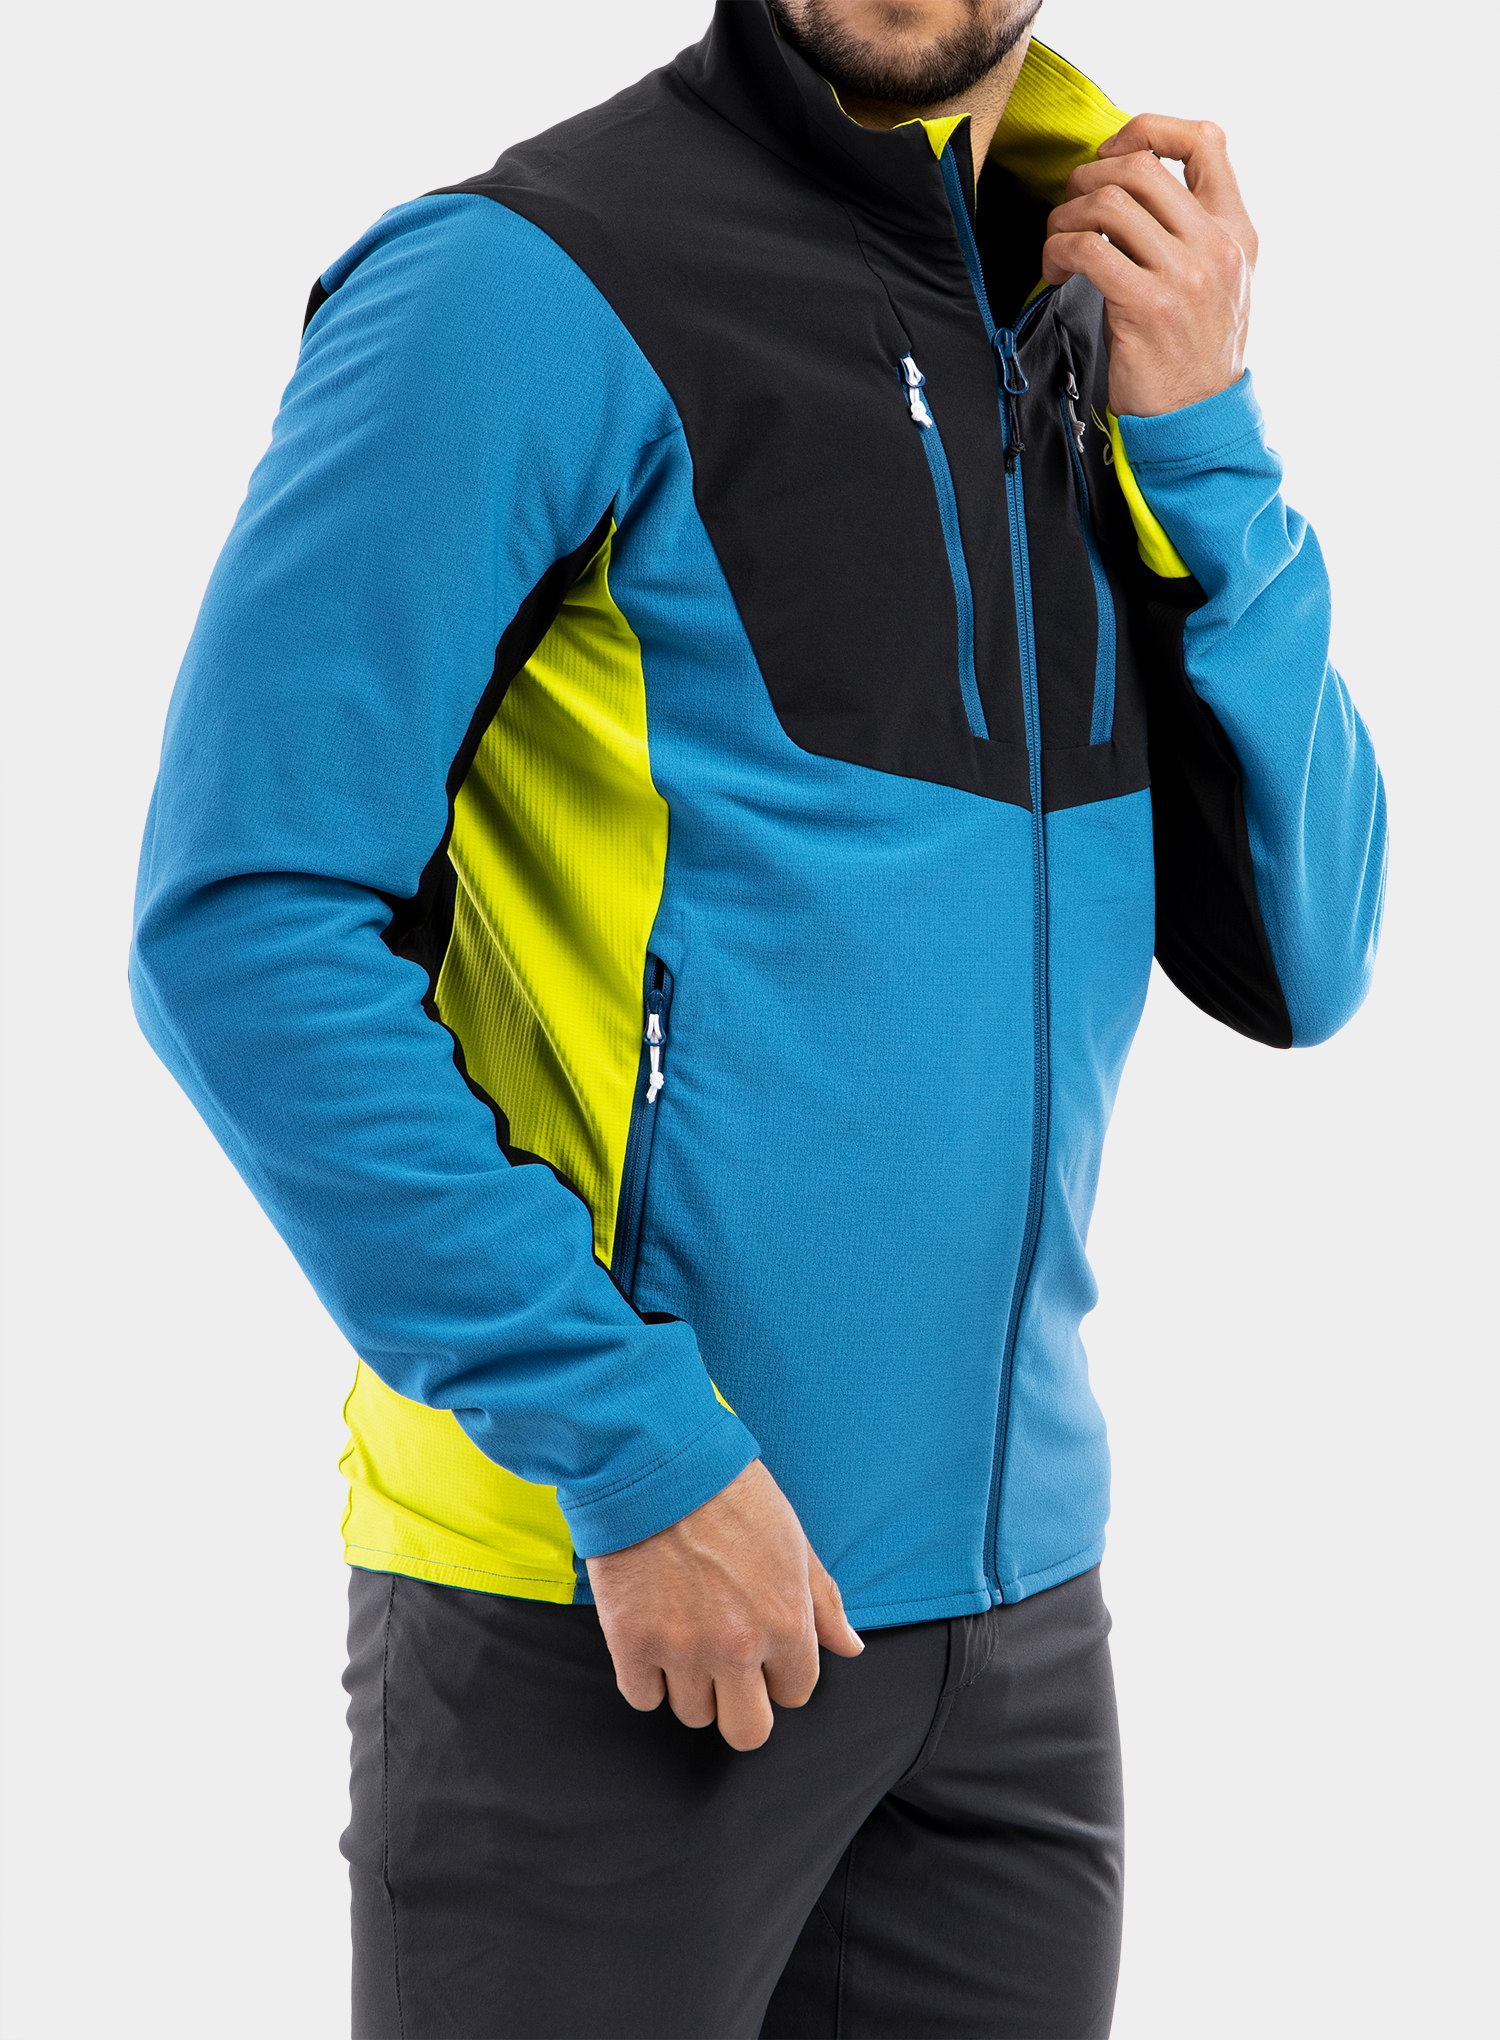 Bluza Montura Stretch Pro 2.0 Jacket - teal blue/lime green - zdjęcie nr. 10